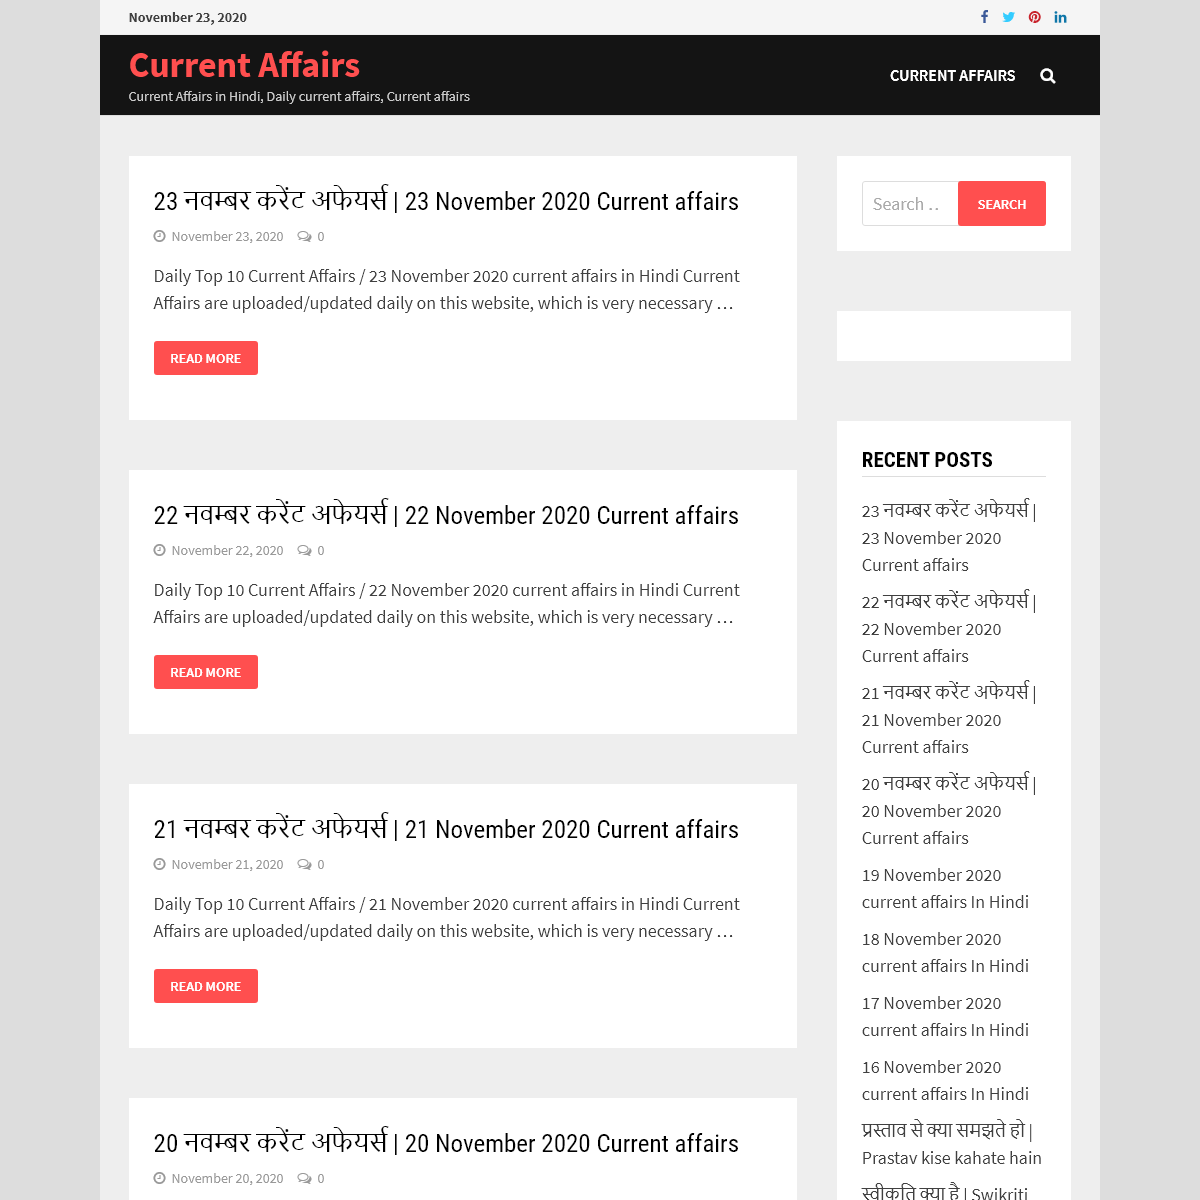 Current Affairs - Current Affairs in Hindi, Daily current affairs, Current affairs